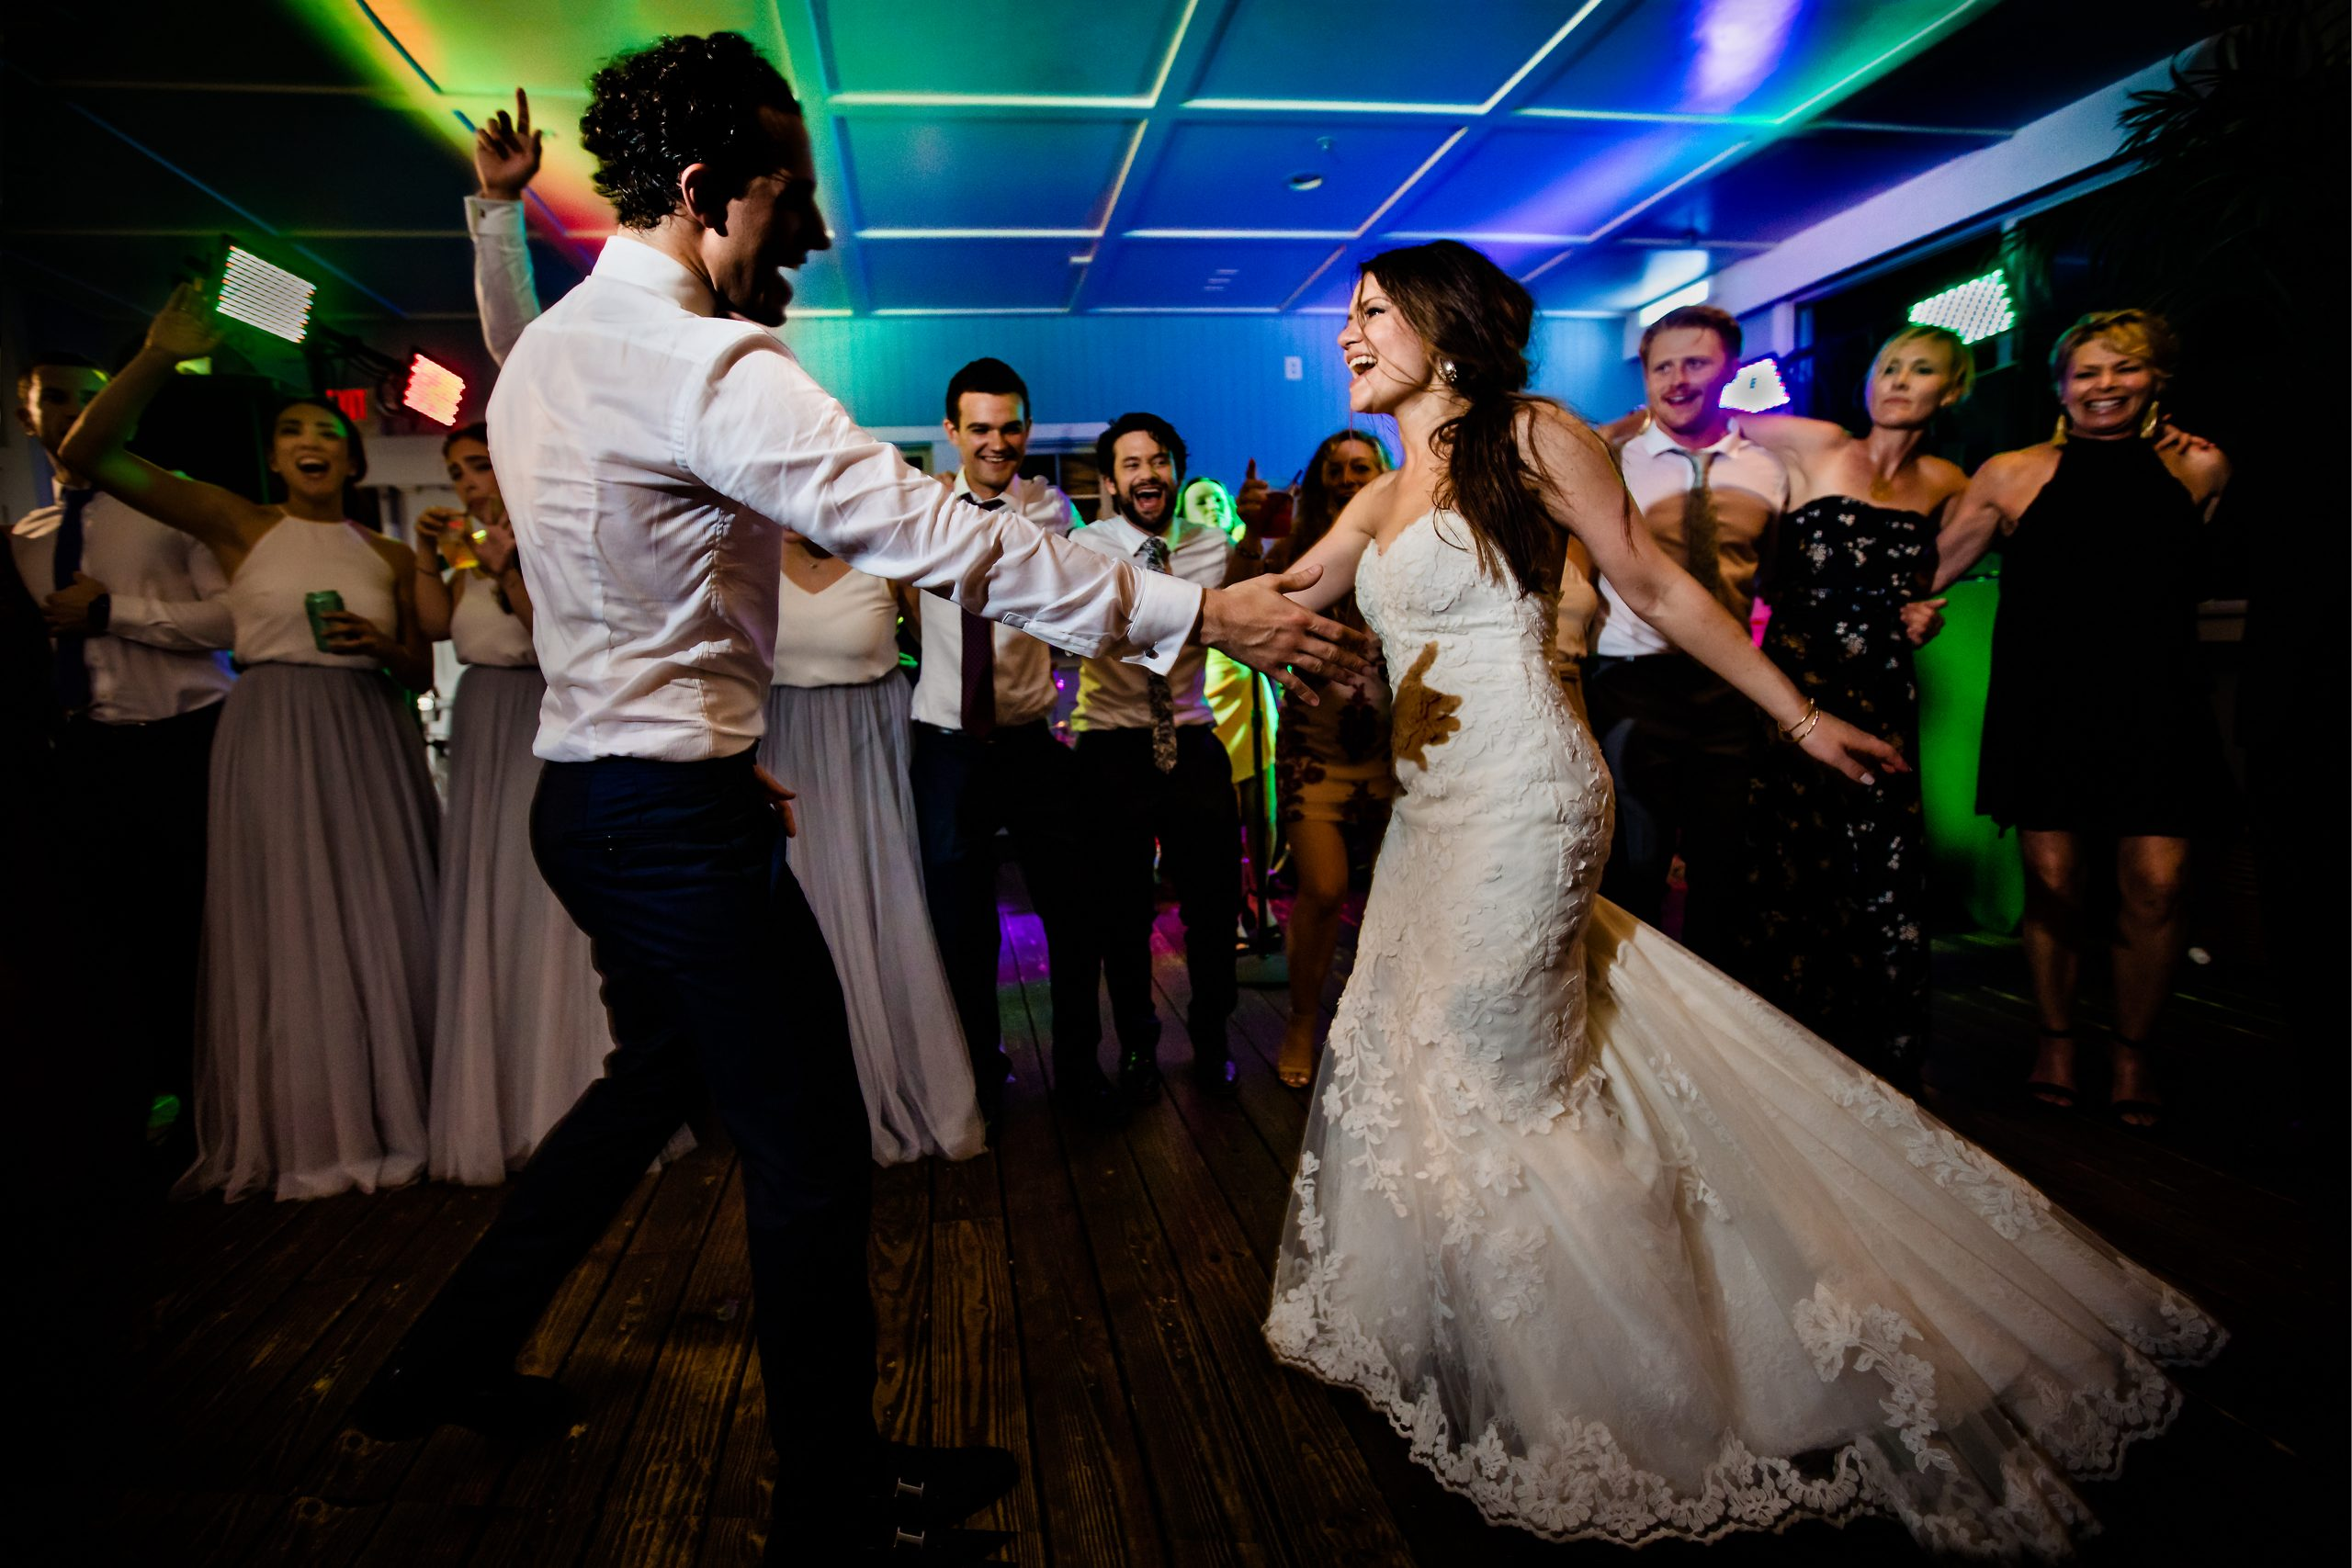 Bride and groom share a dance as friends cheer on